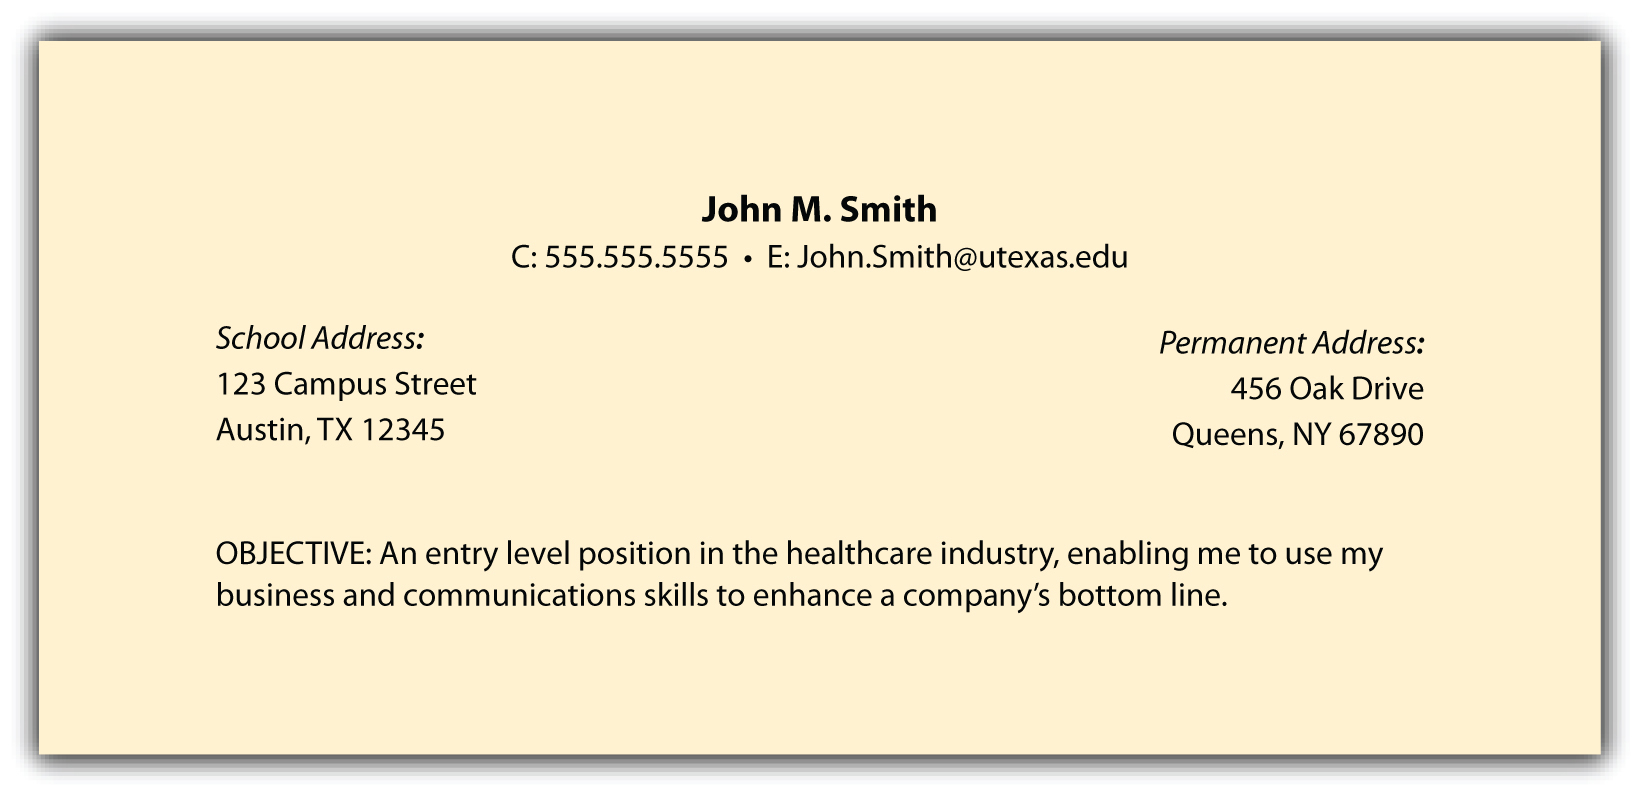 should i write resume in the header of my document